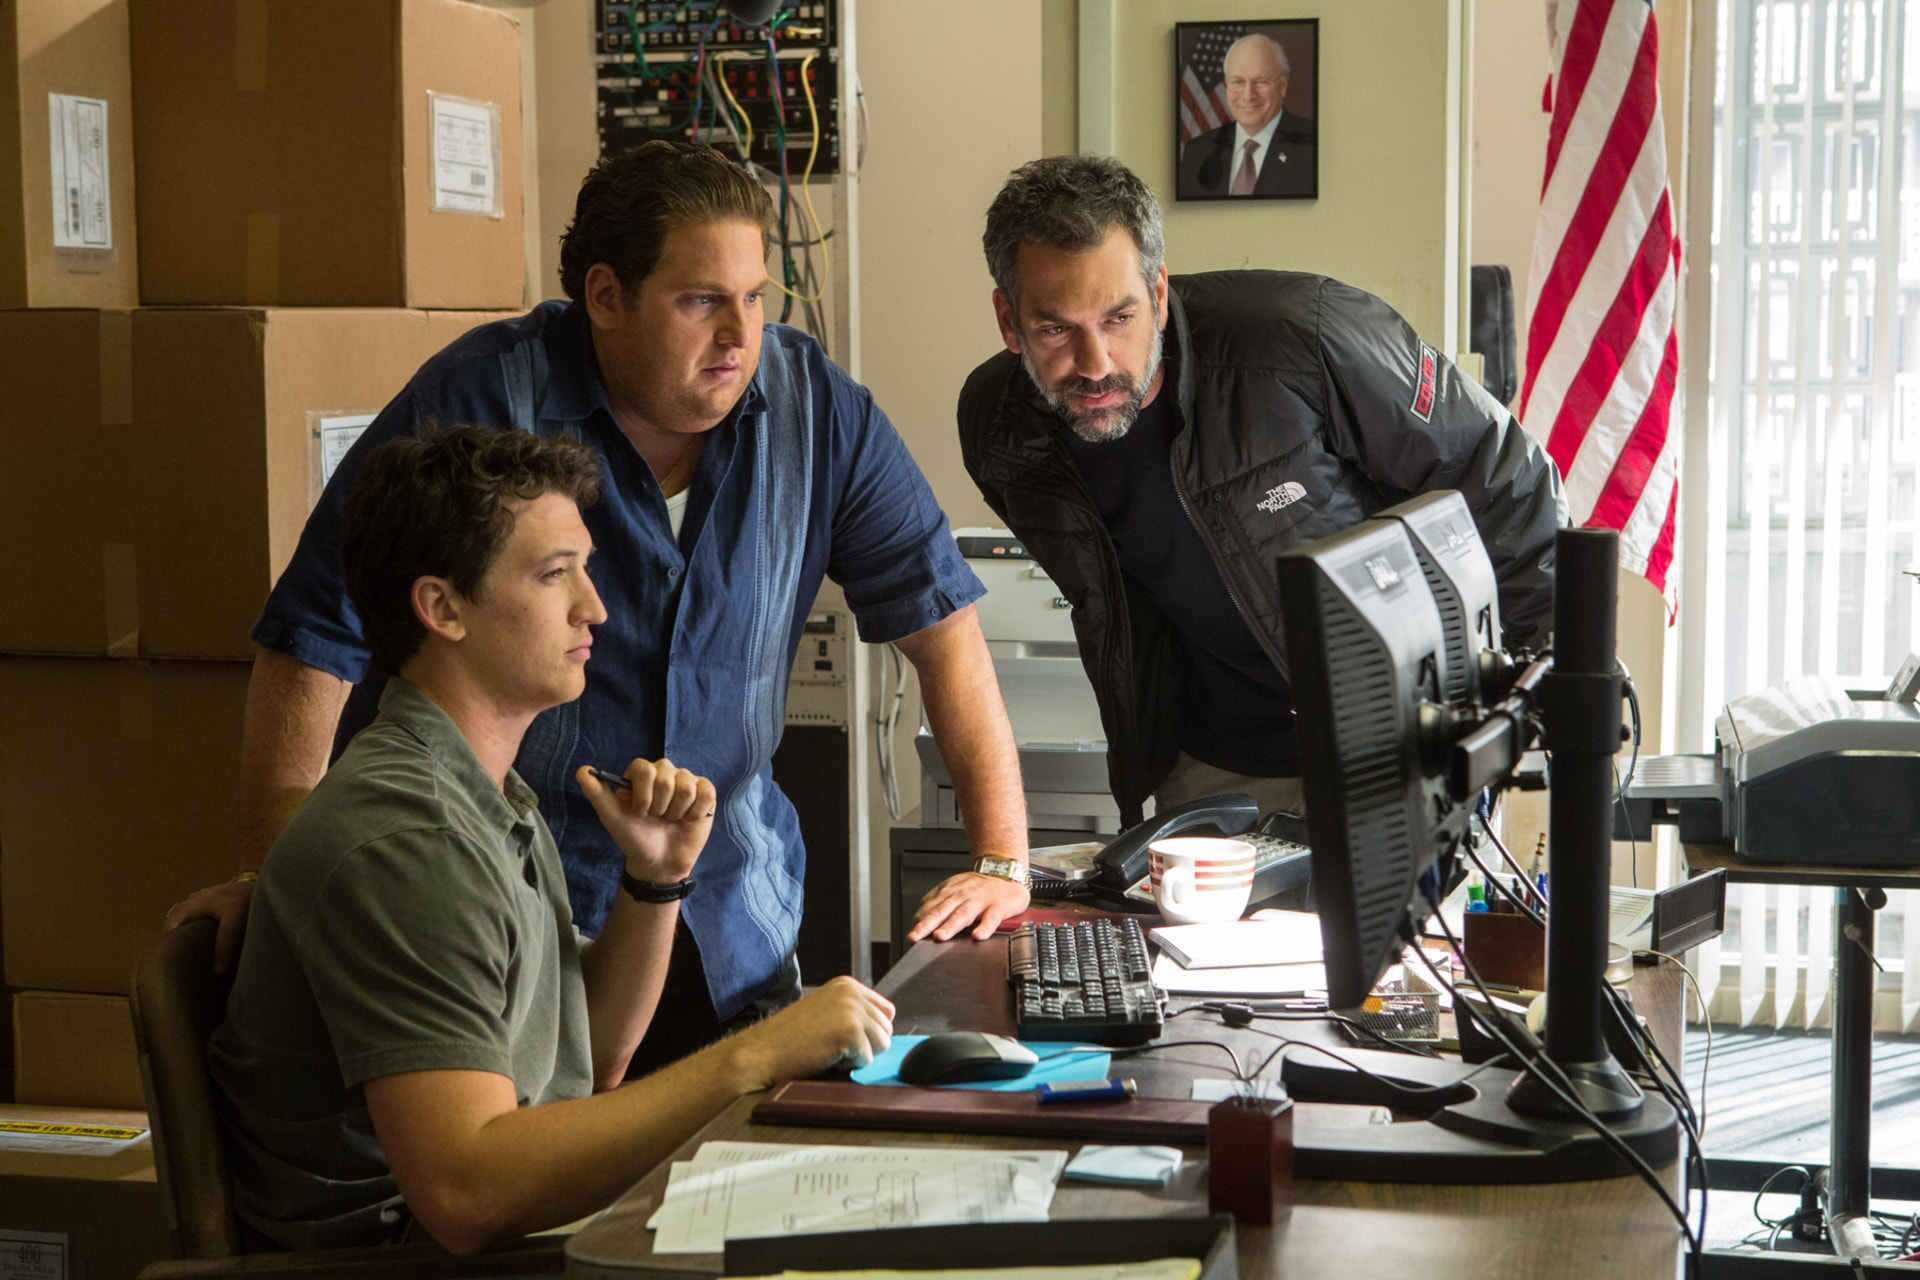 """MILES TELLER, JONAH HILL and director/writer/producer TODD PHILLIPS on the set of Warner Bros. Pictures' comedic drama (based on true events) """"WAR DOGS,"""" a Warner Bros. Pictures release."""